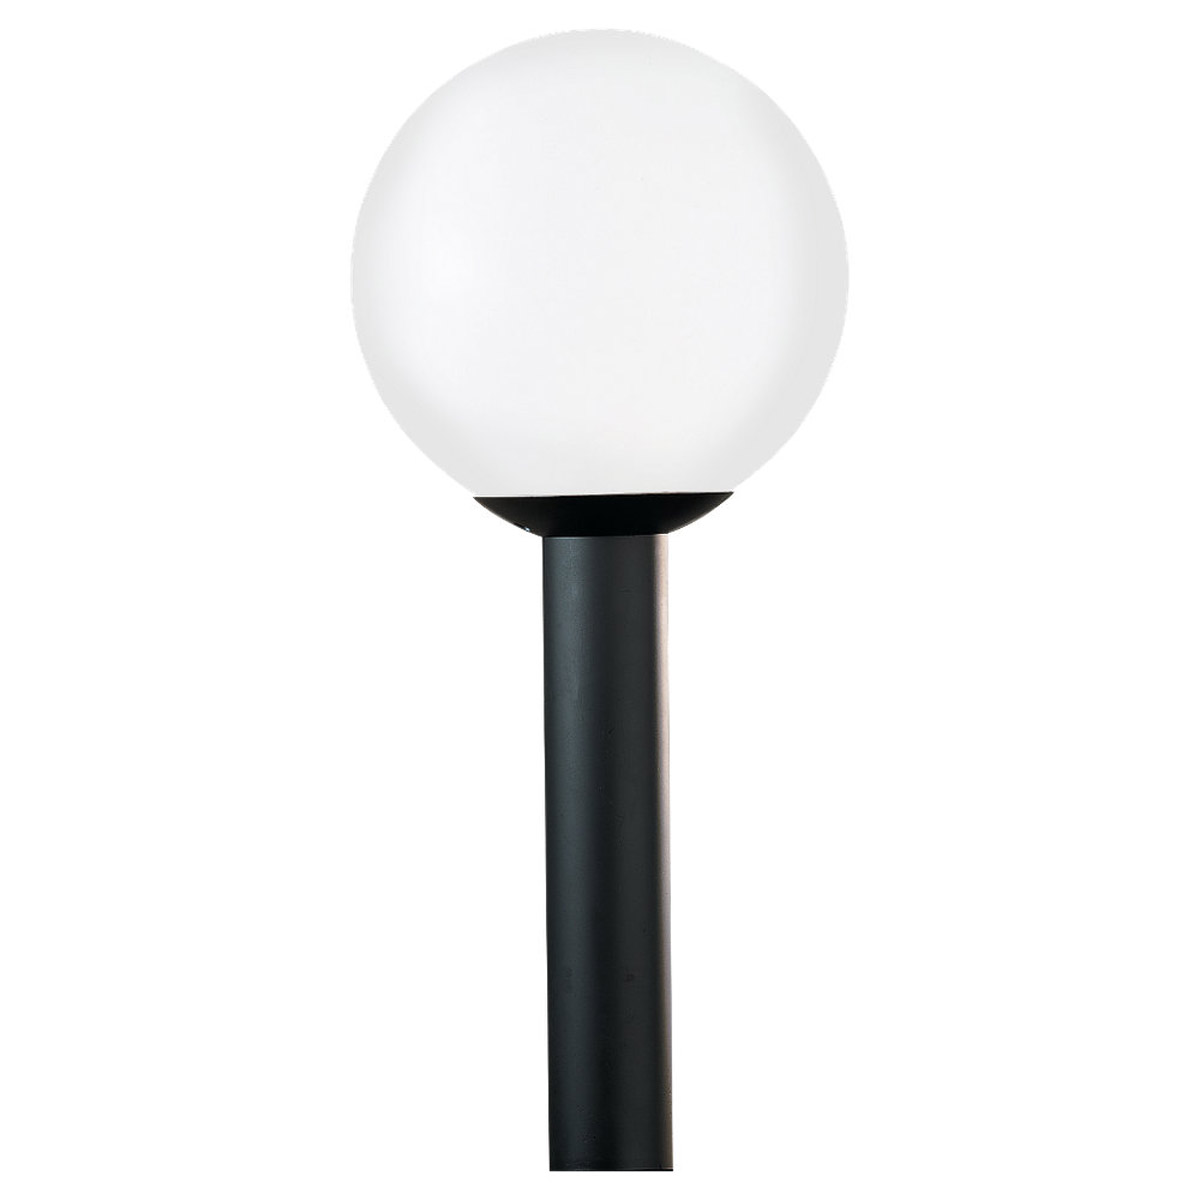 Sea Gull 8254-68 Outdoor Globe 1 Light 15 inch White Plastic Outdoor Post Lantern photo